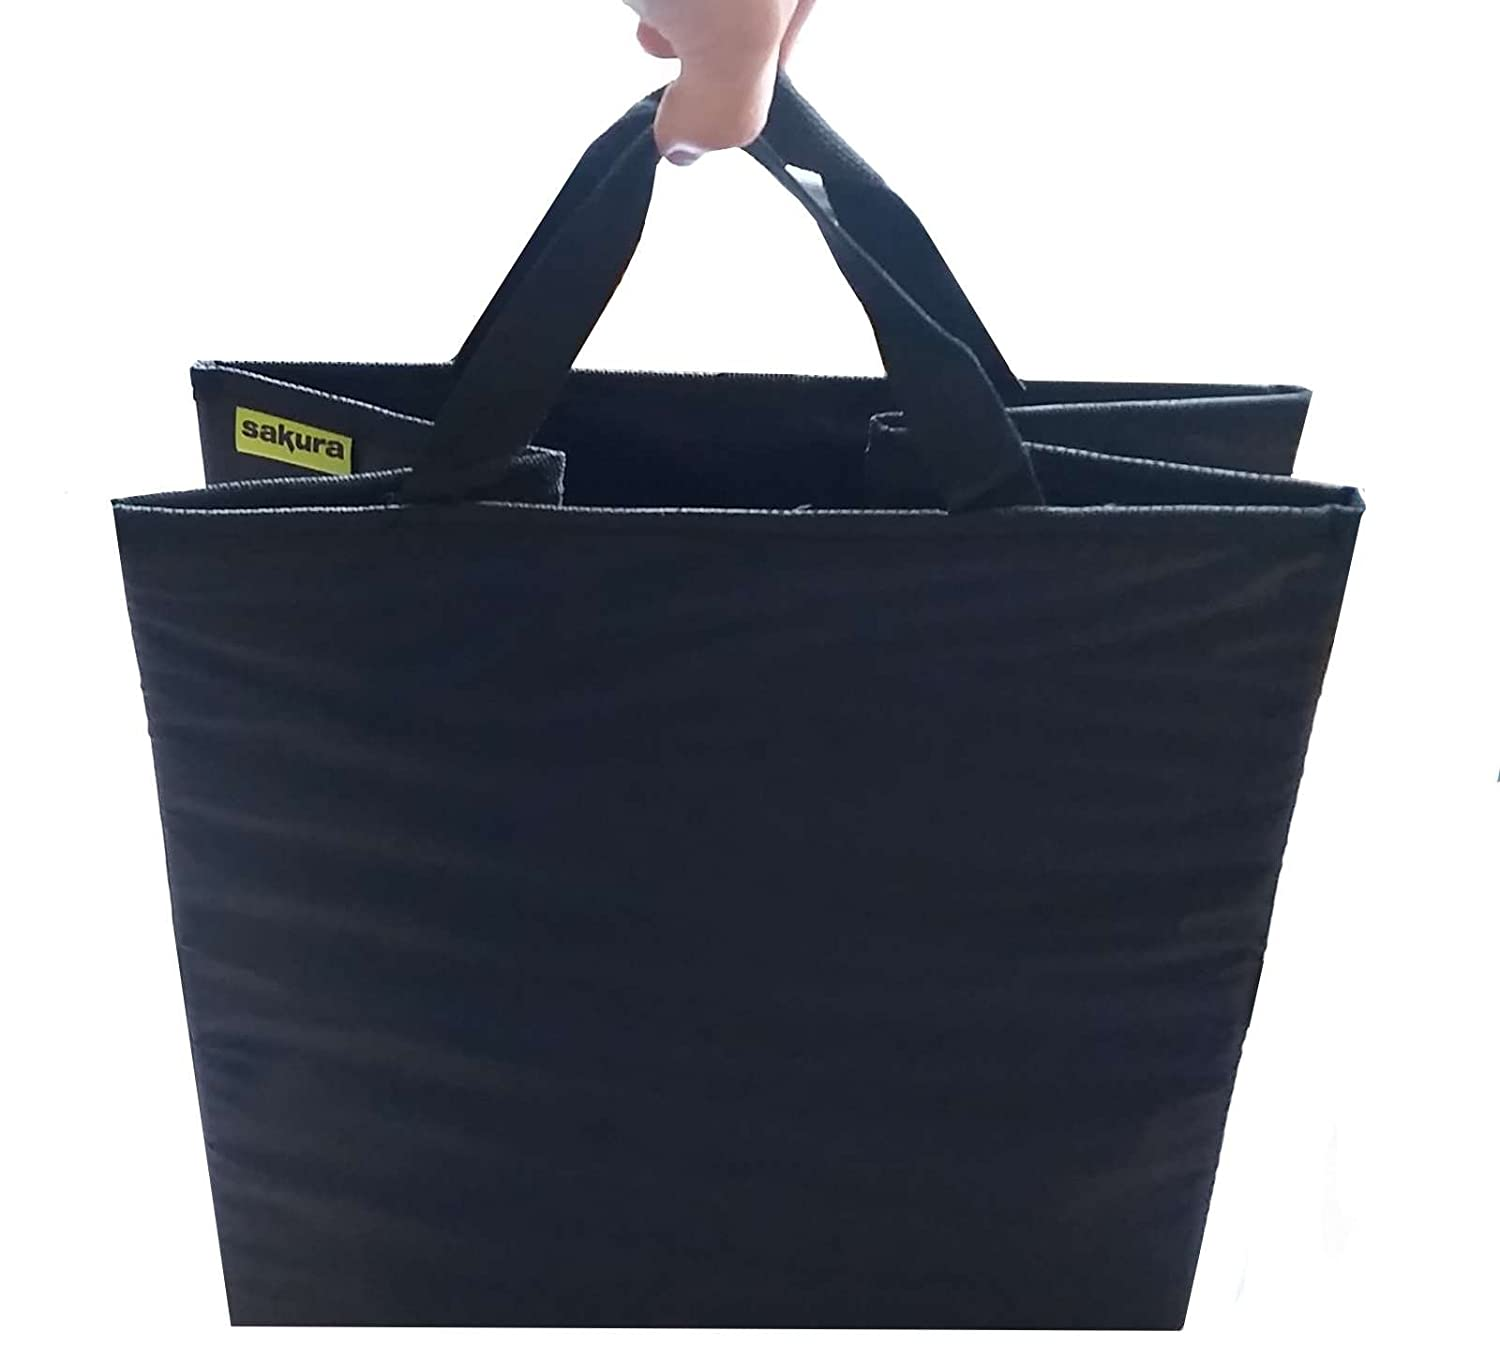 Sturdy High Quality XtremeAuto/® Tidy Shopper 3 in 1 Shopping Bag Car Boot Storage Compartments